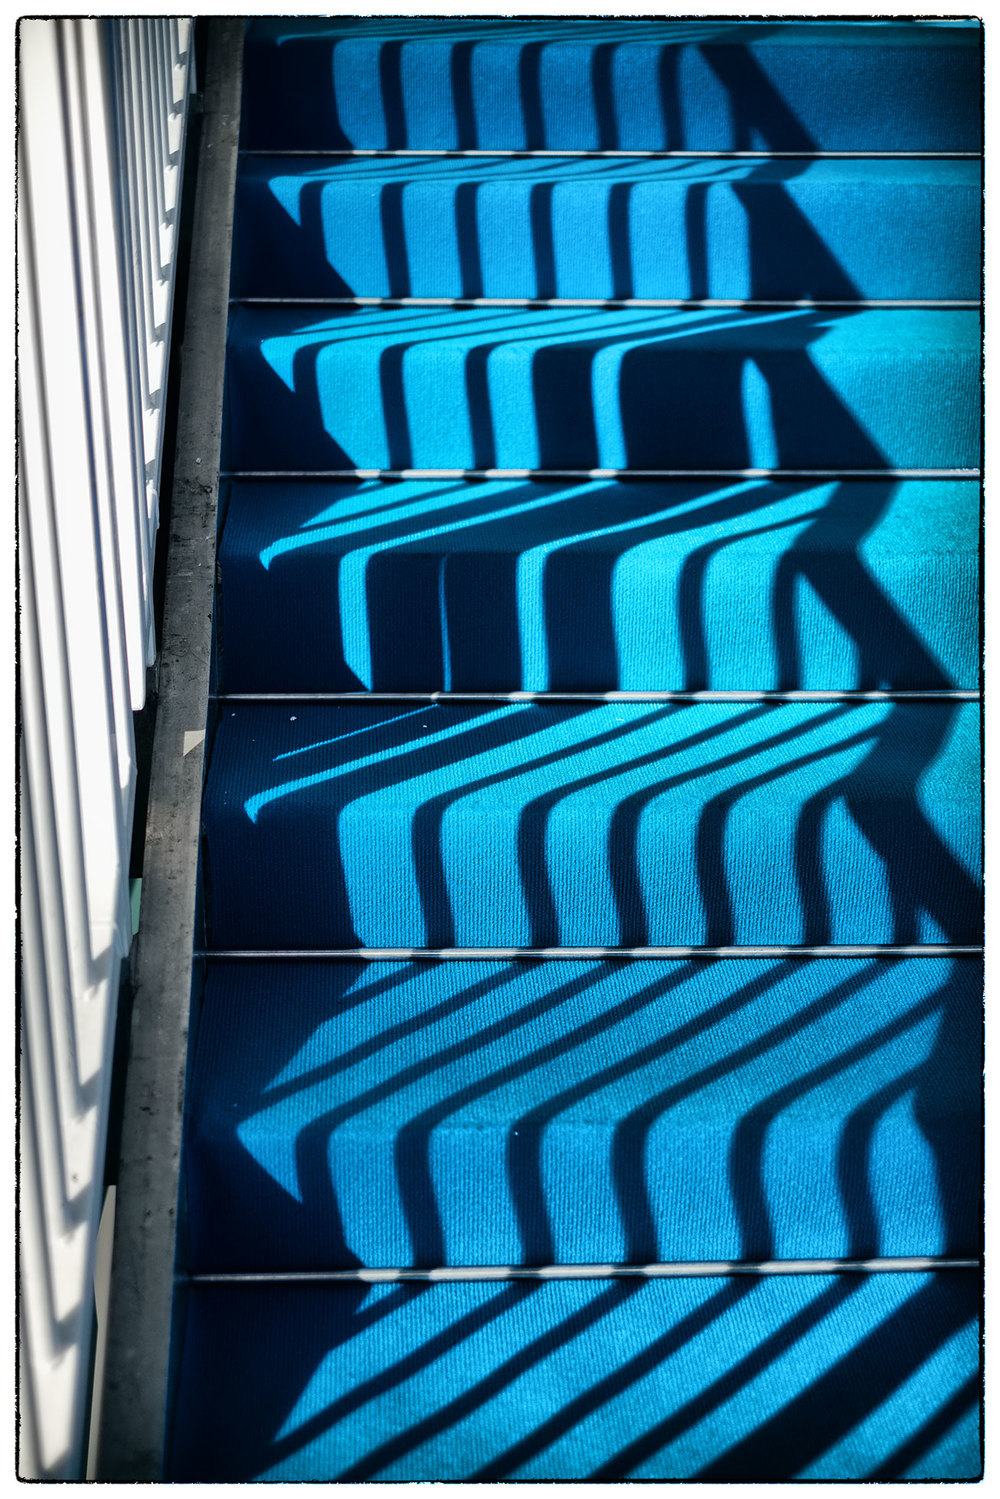 Shadows cast on a staircase.